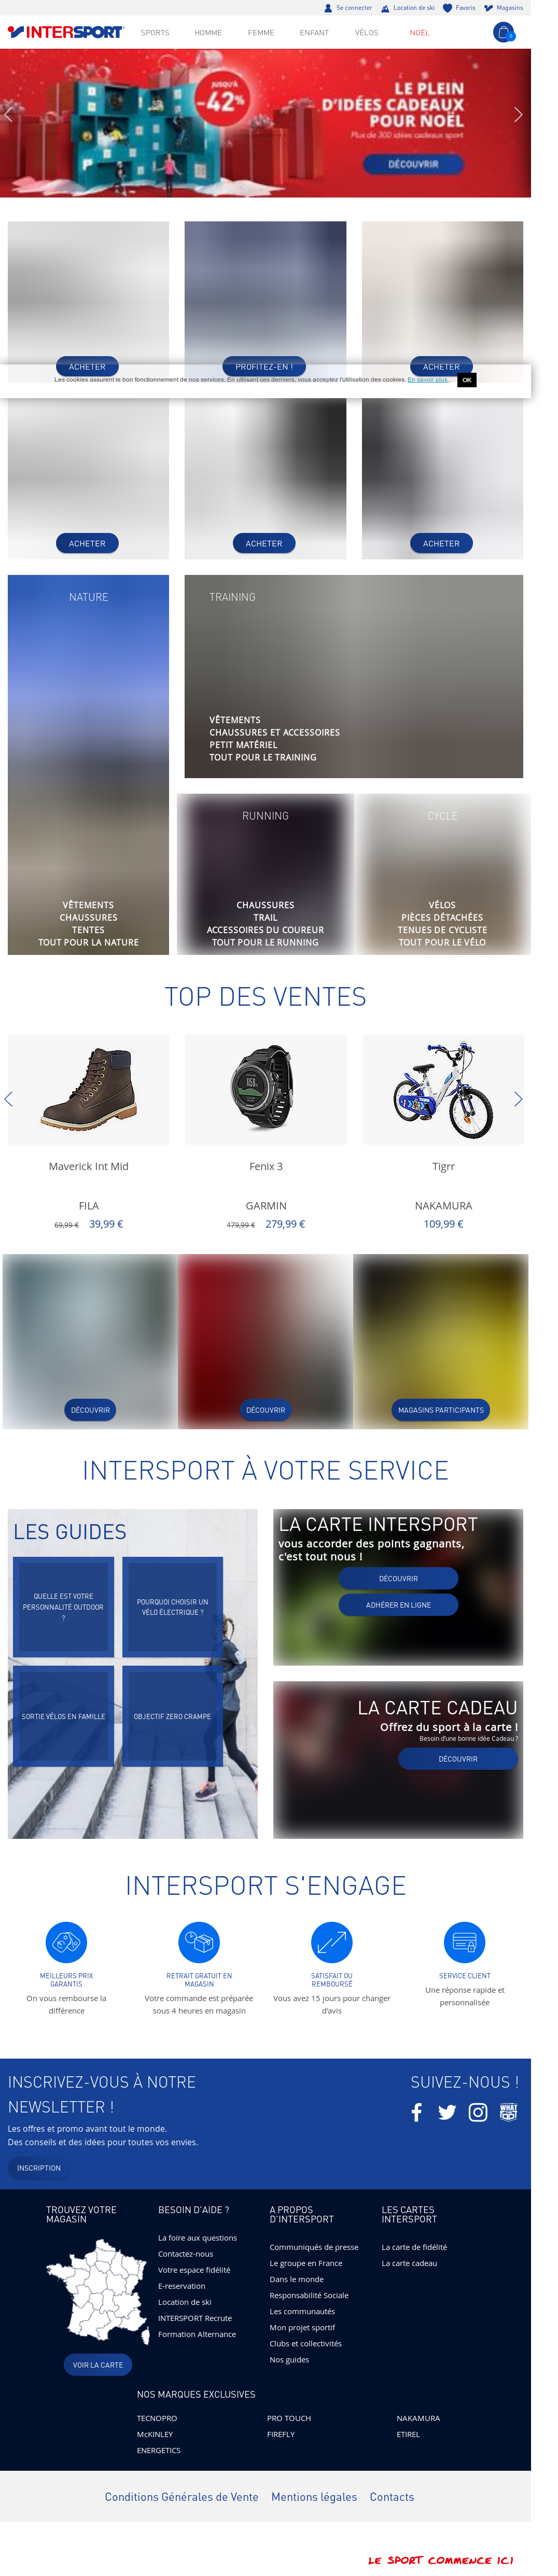 Intersport France Sa Competitors, Revenue and Employees